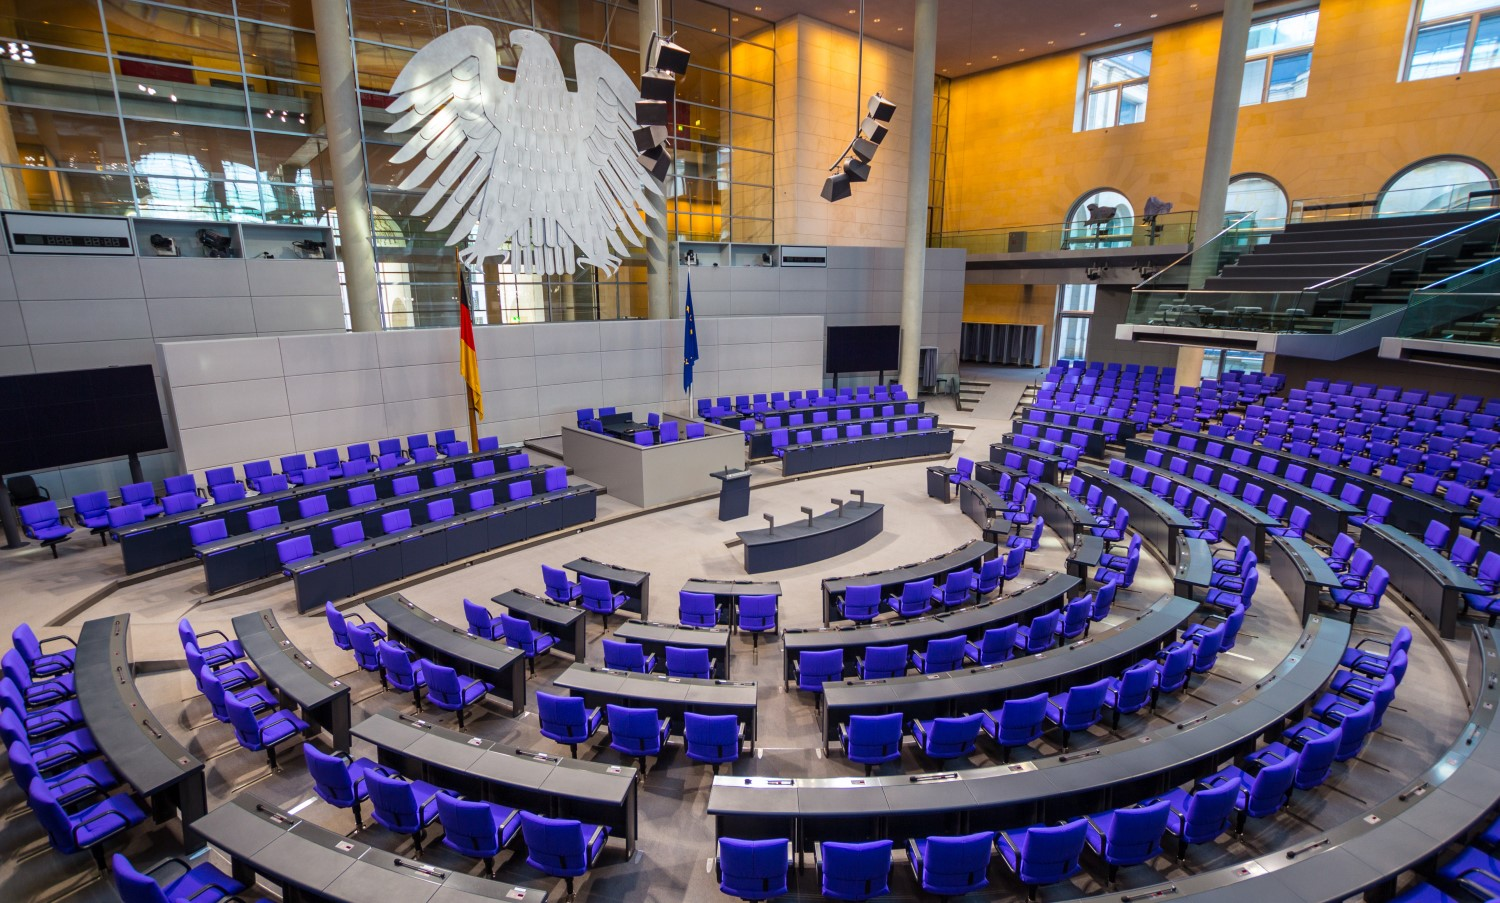 German government support cryptocurrencies